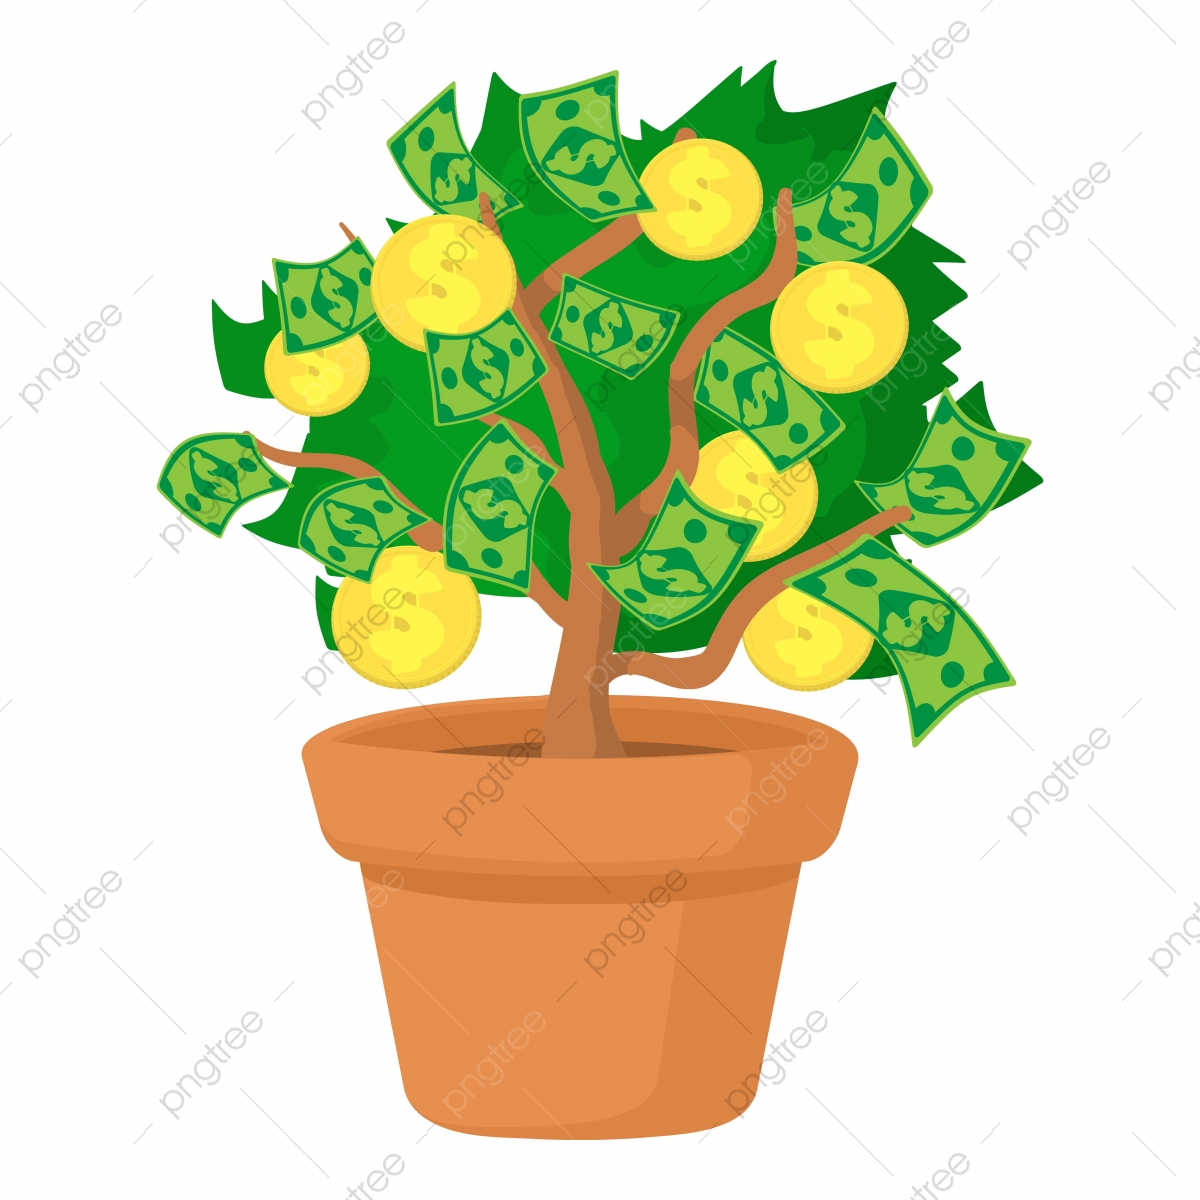 Money Tree Icon Cartoon Style Money Clipart Money Icons Tree Icons Png And Vector With Transparent Background For Free Download 103+ tree icon images for your graphic design, presentations, web design and other projects. https pngtree com freepng money tree icon cartoon style 5208183 html